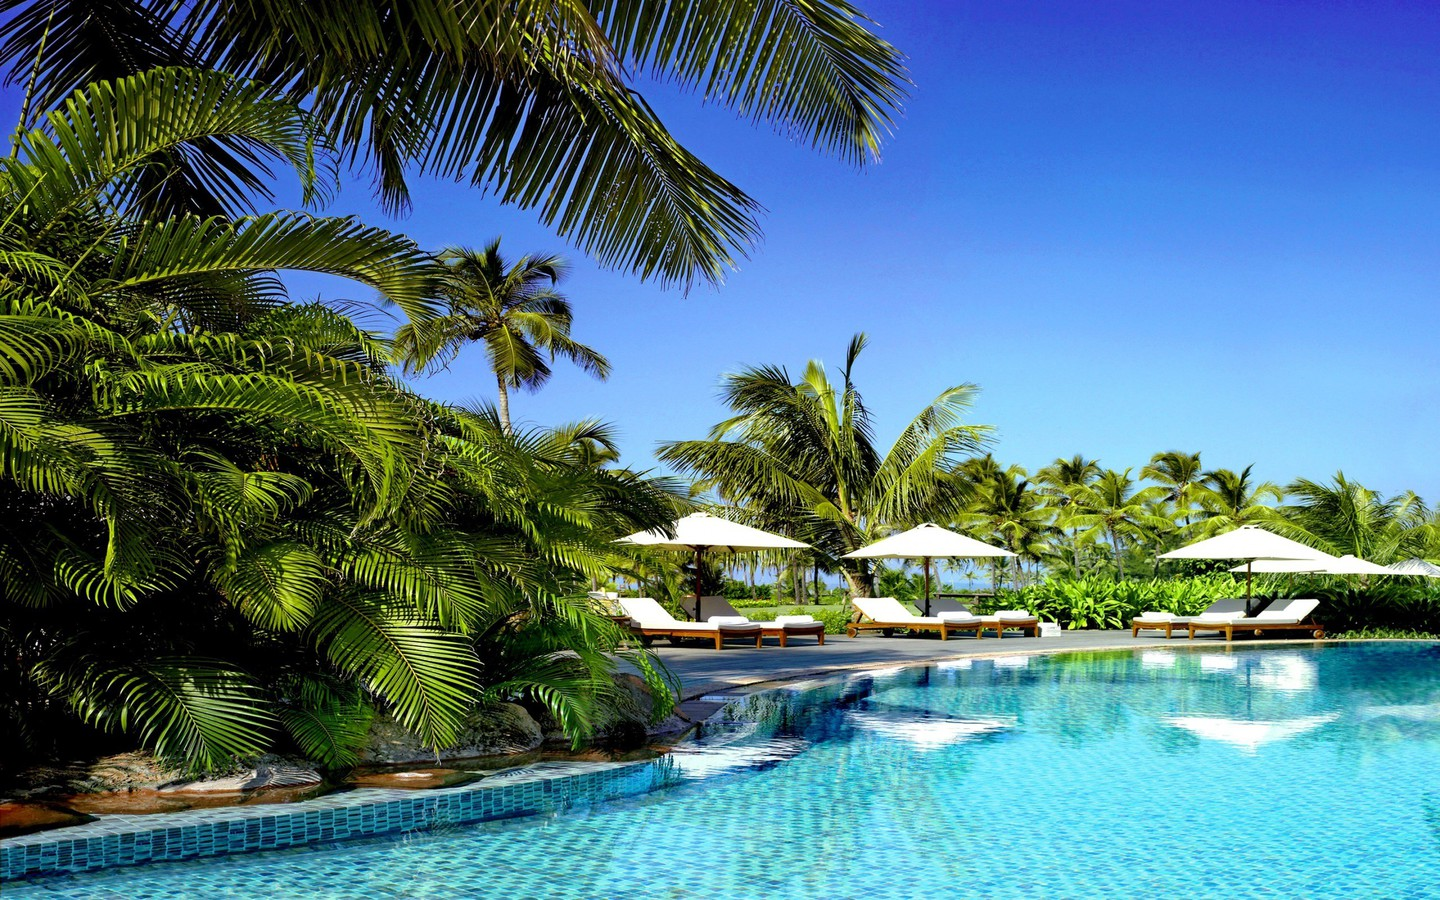 3d Wallpapers For Pc 1920x1080 Free Download Palm Trees Swimming Pools Tropical Wallpaper